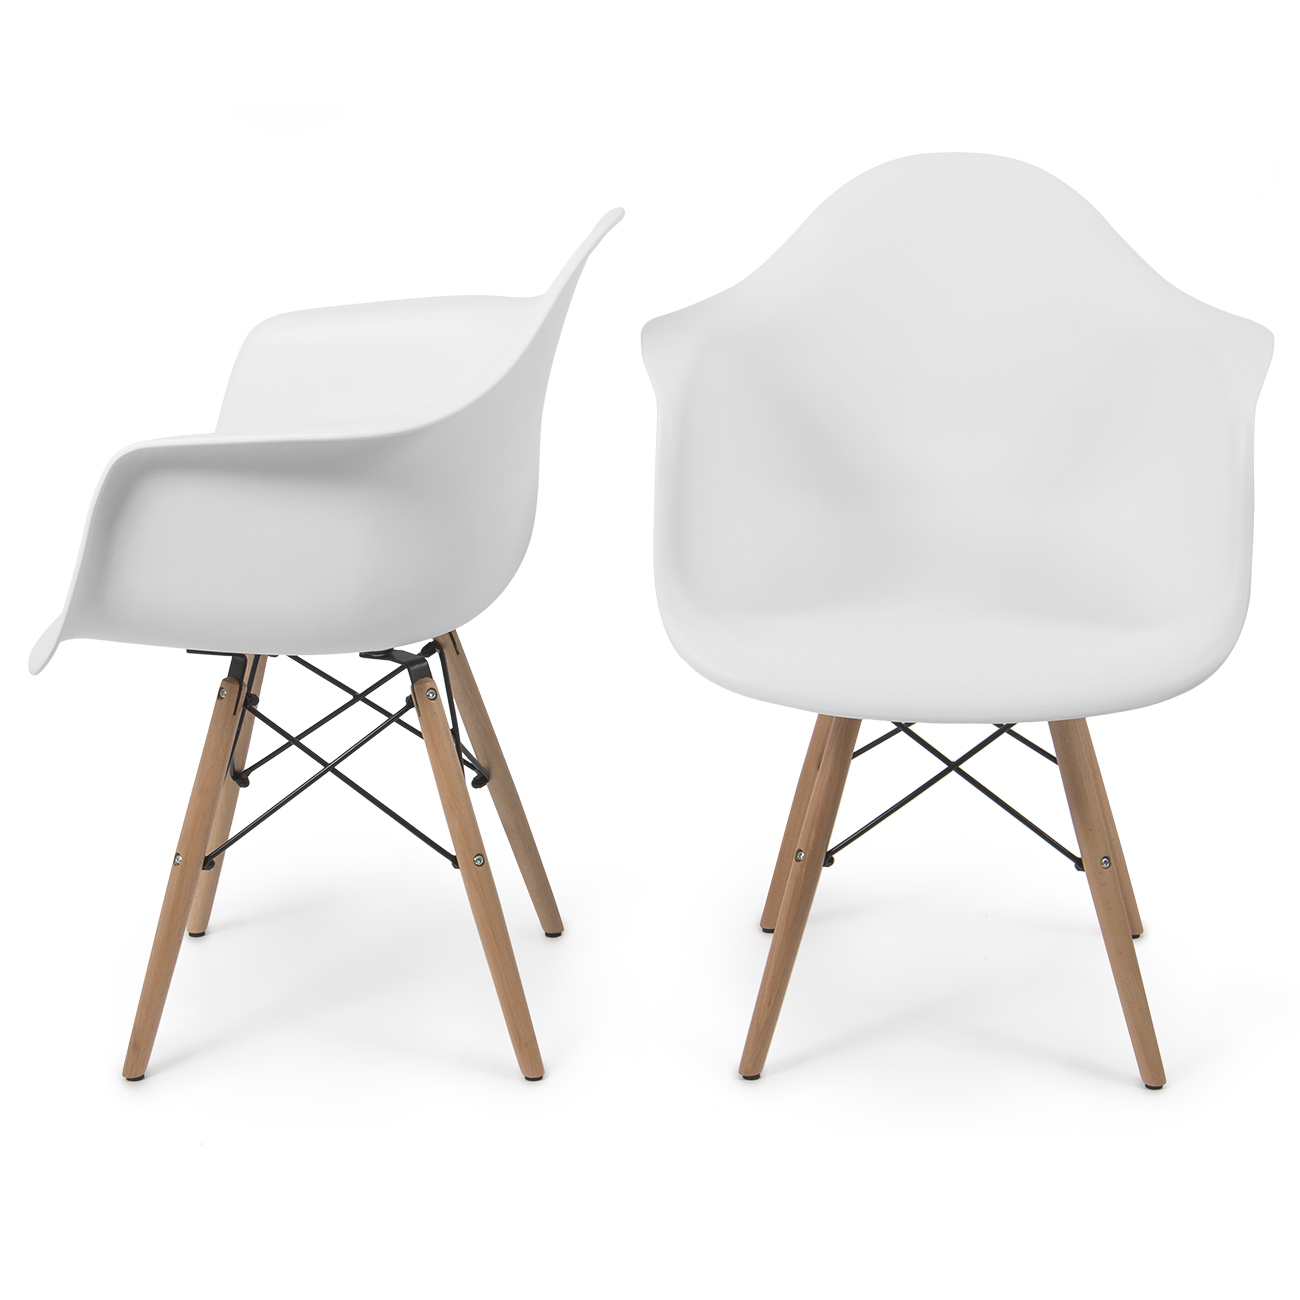 Belleze Retro Modern Armchair Side Seat Chairs with Wooden Legs, Shell Molded, Set of 2, White